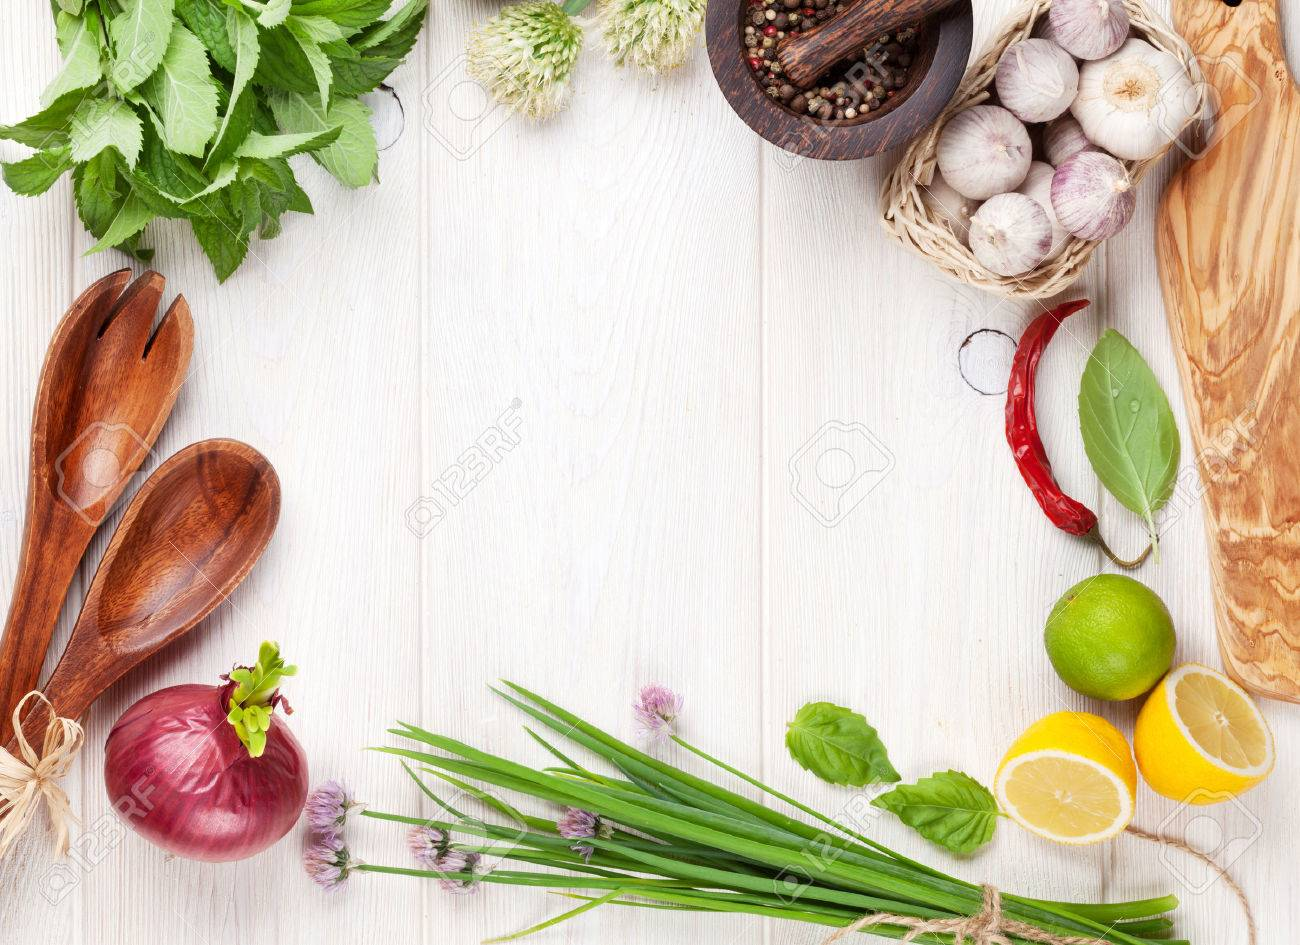 Fresh herbs and spices on wooden table. Top view with copy space Stock Photo - 41540035